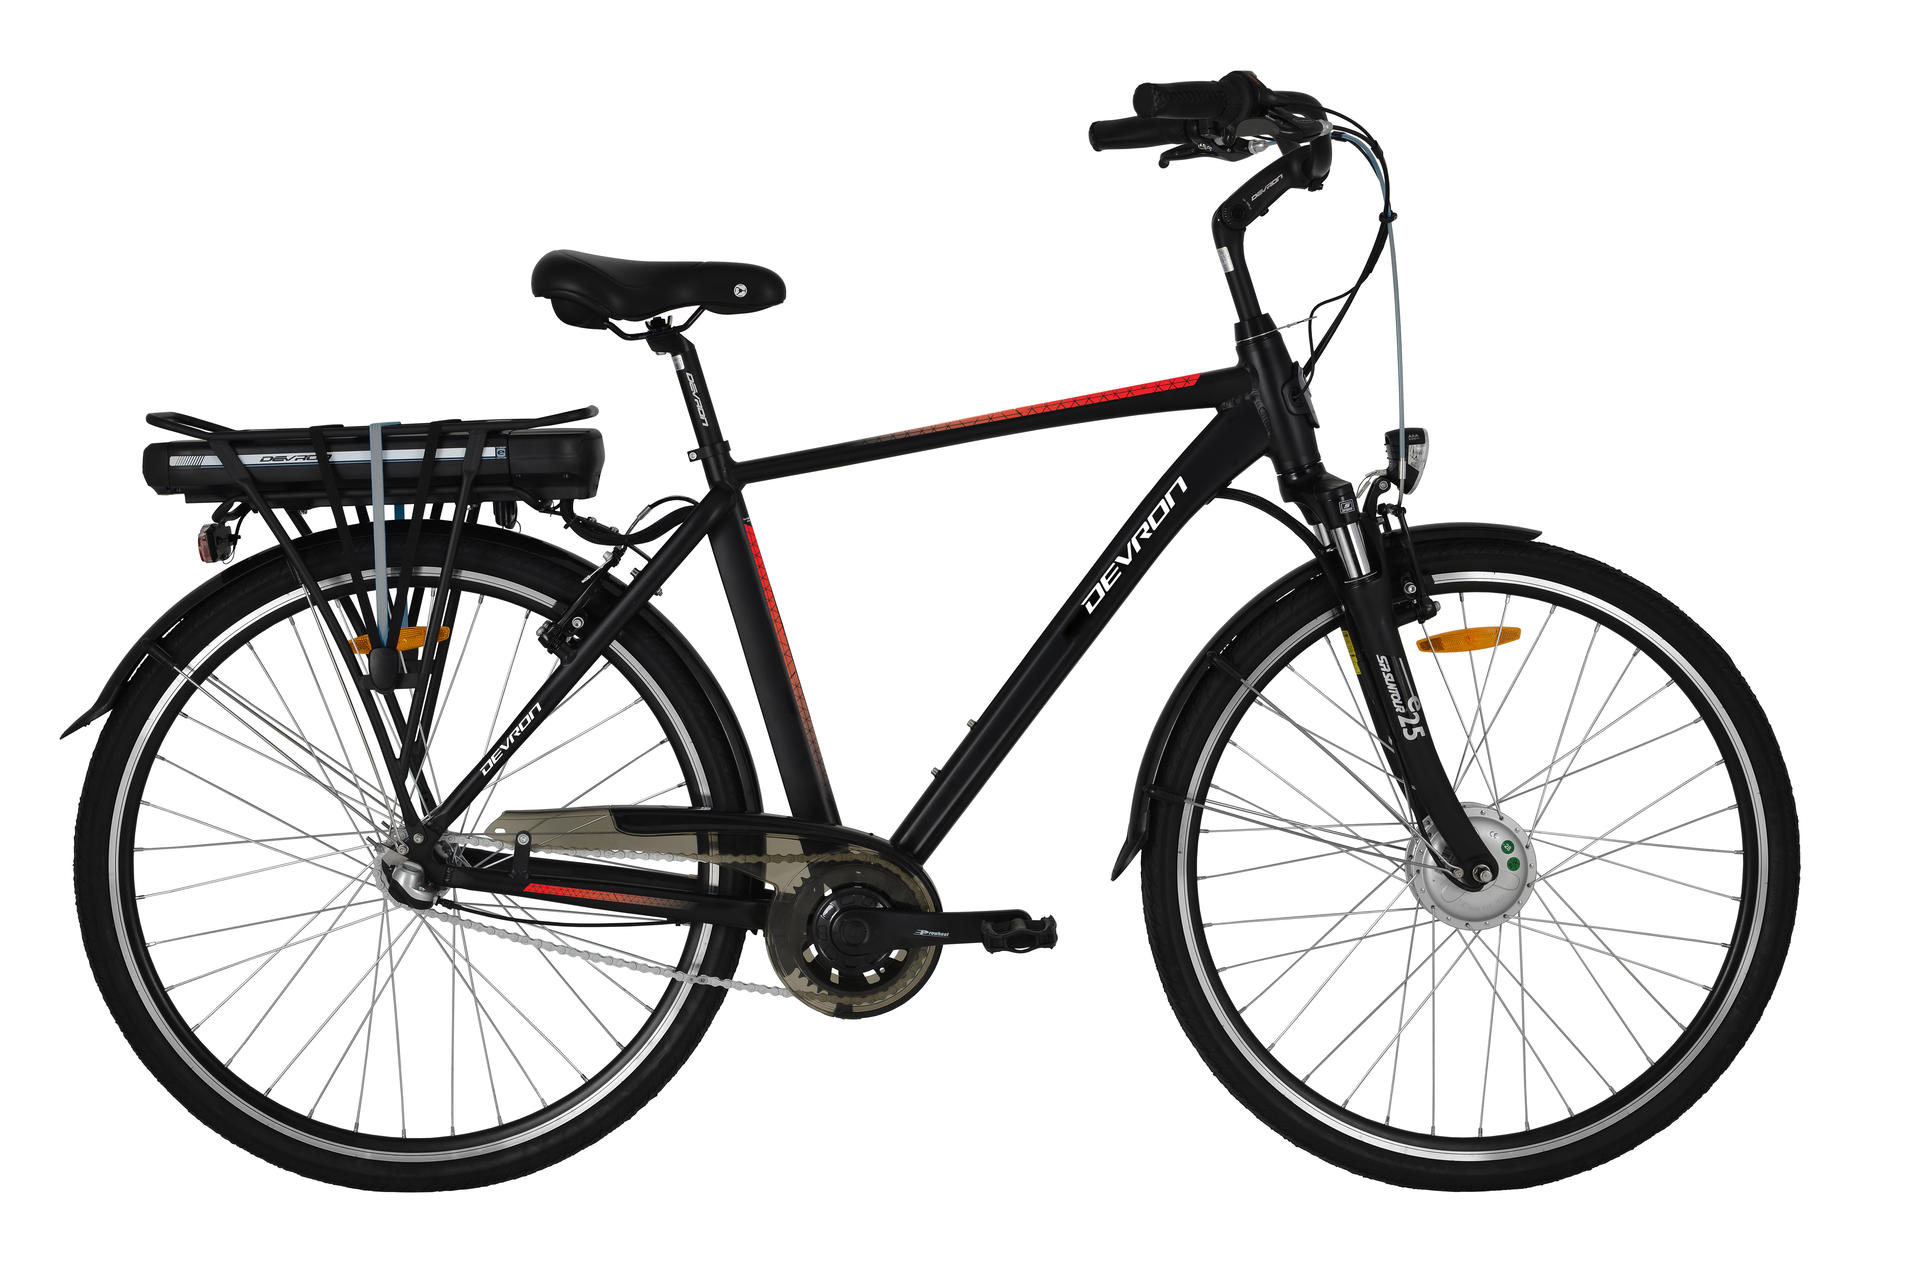 Bicicletta elettrica city bike Devron 28121 490mm Black Matt -28